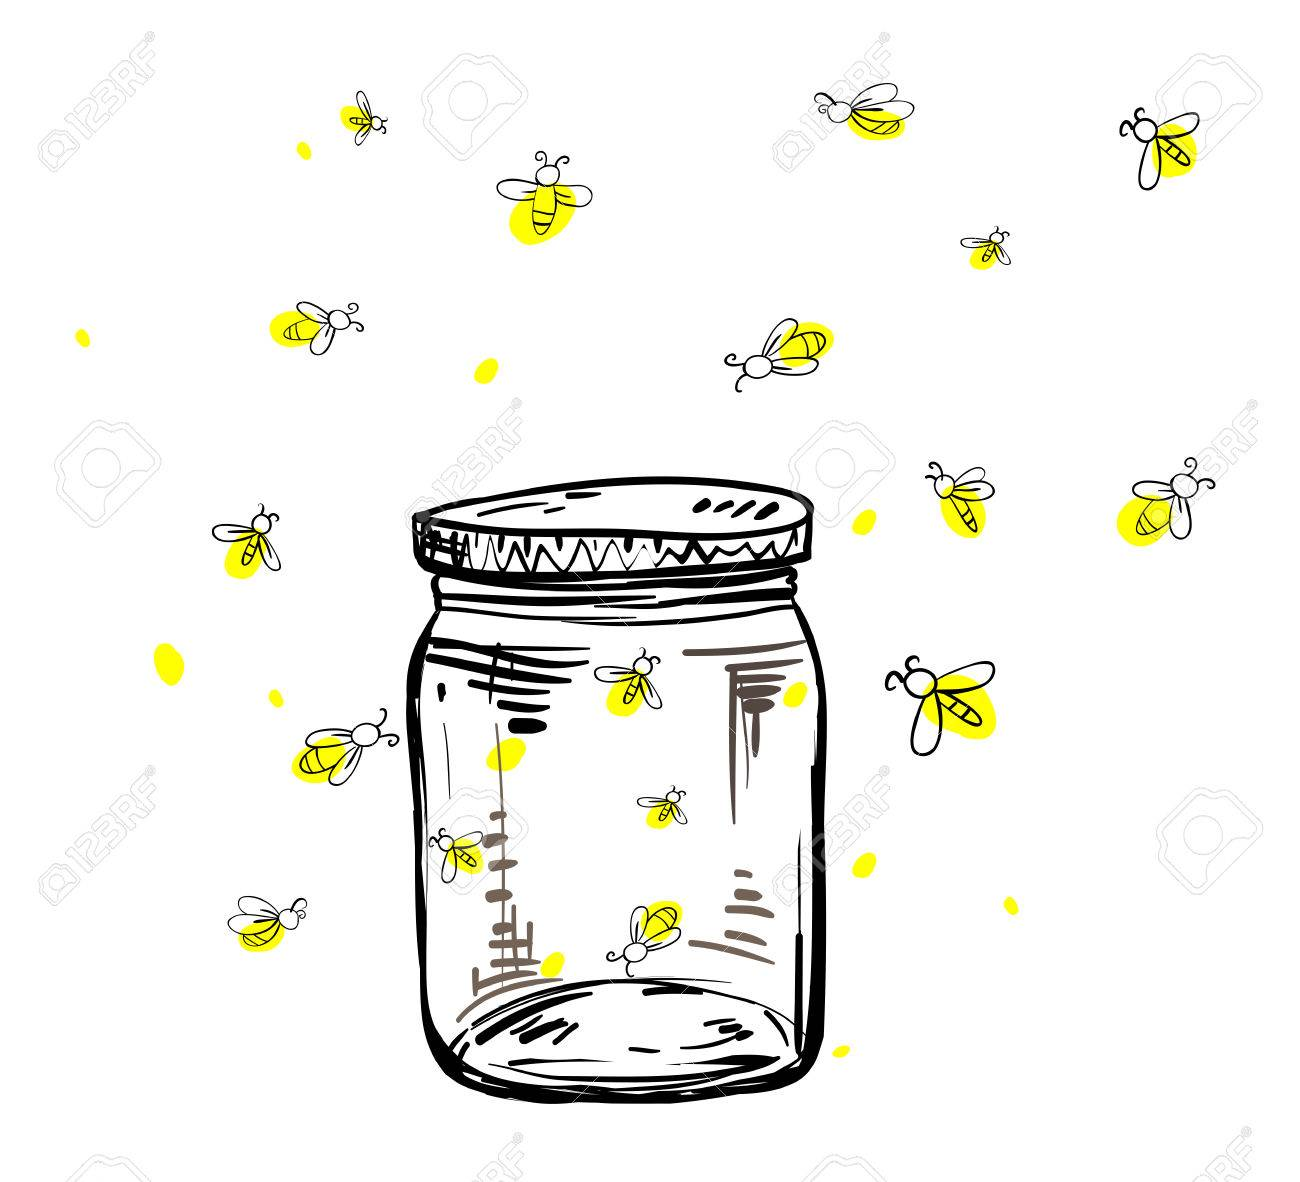 fireflies flying around the jar in hand drawing.